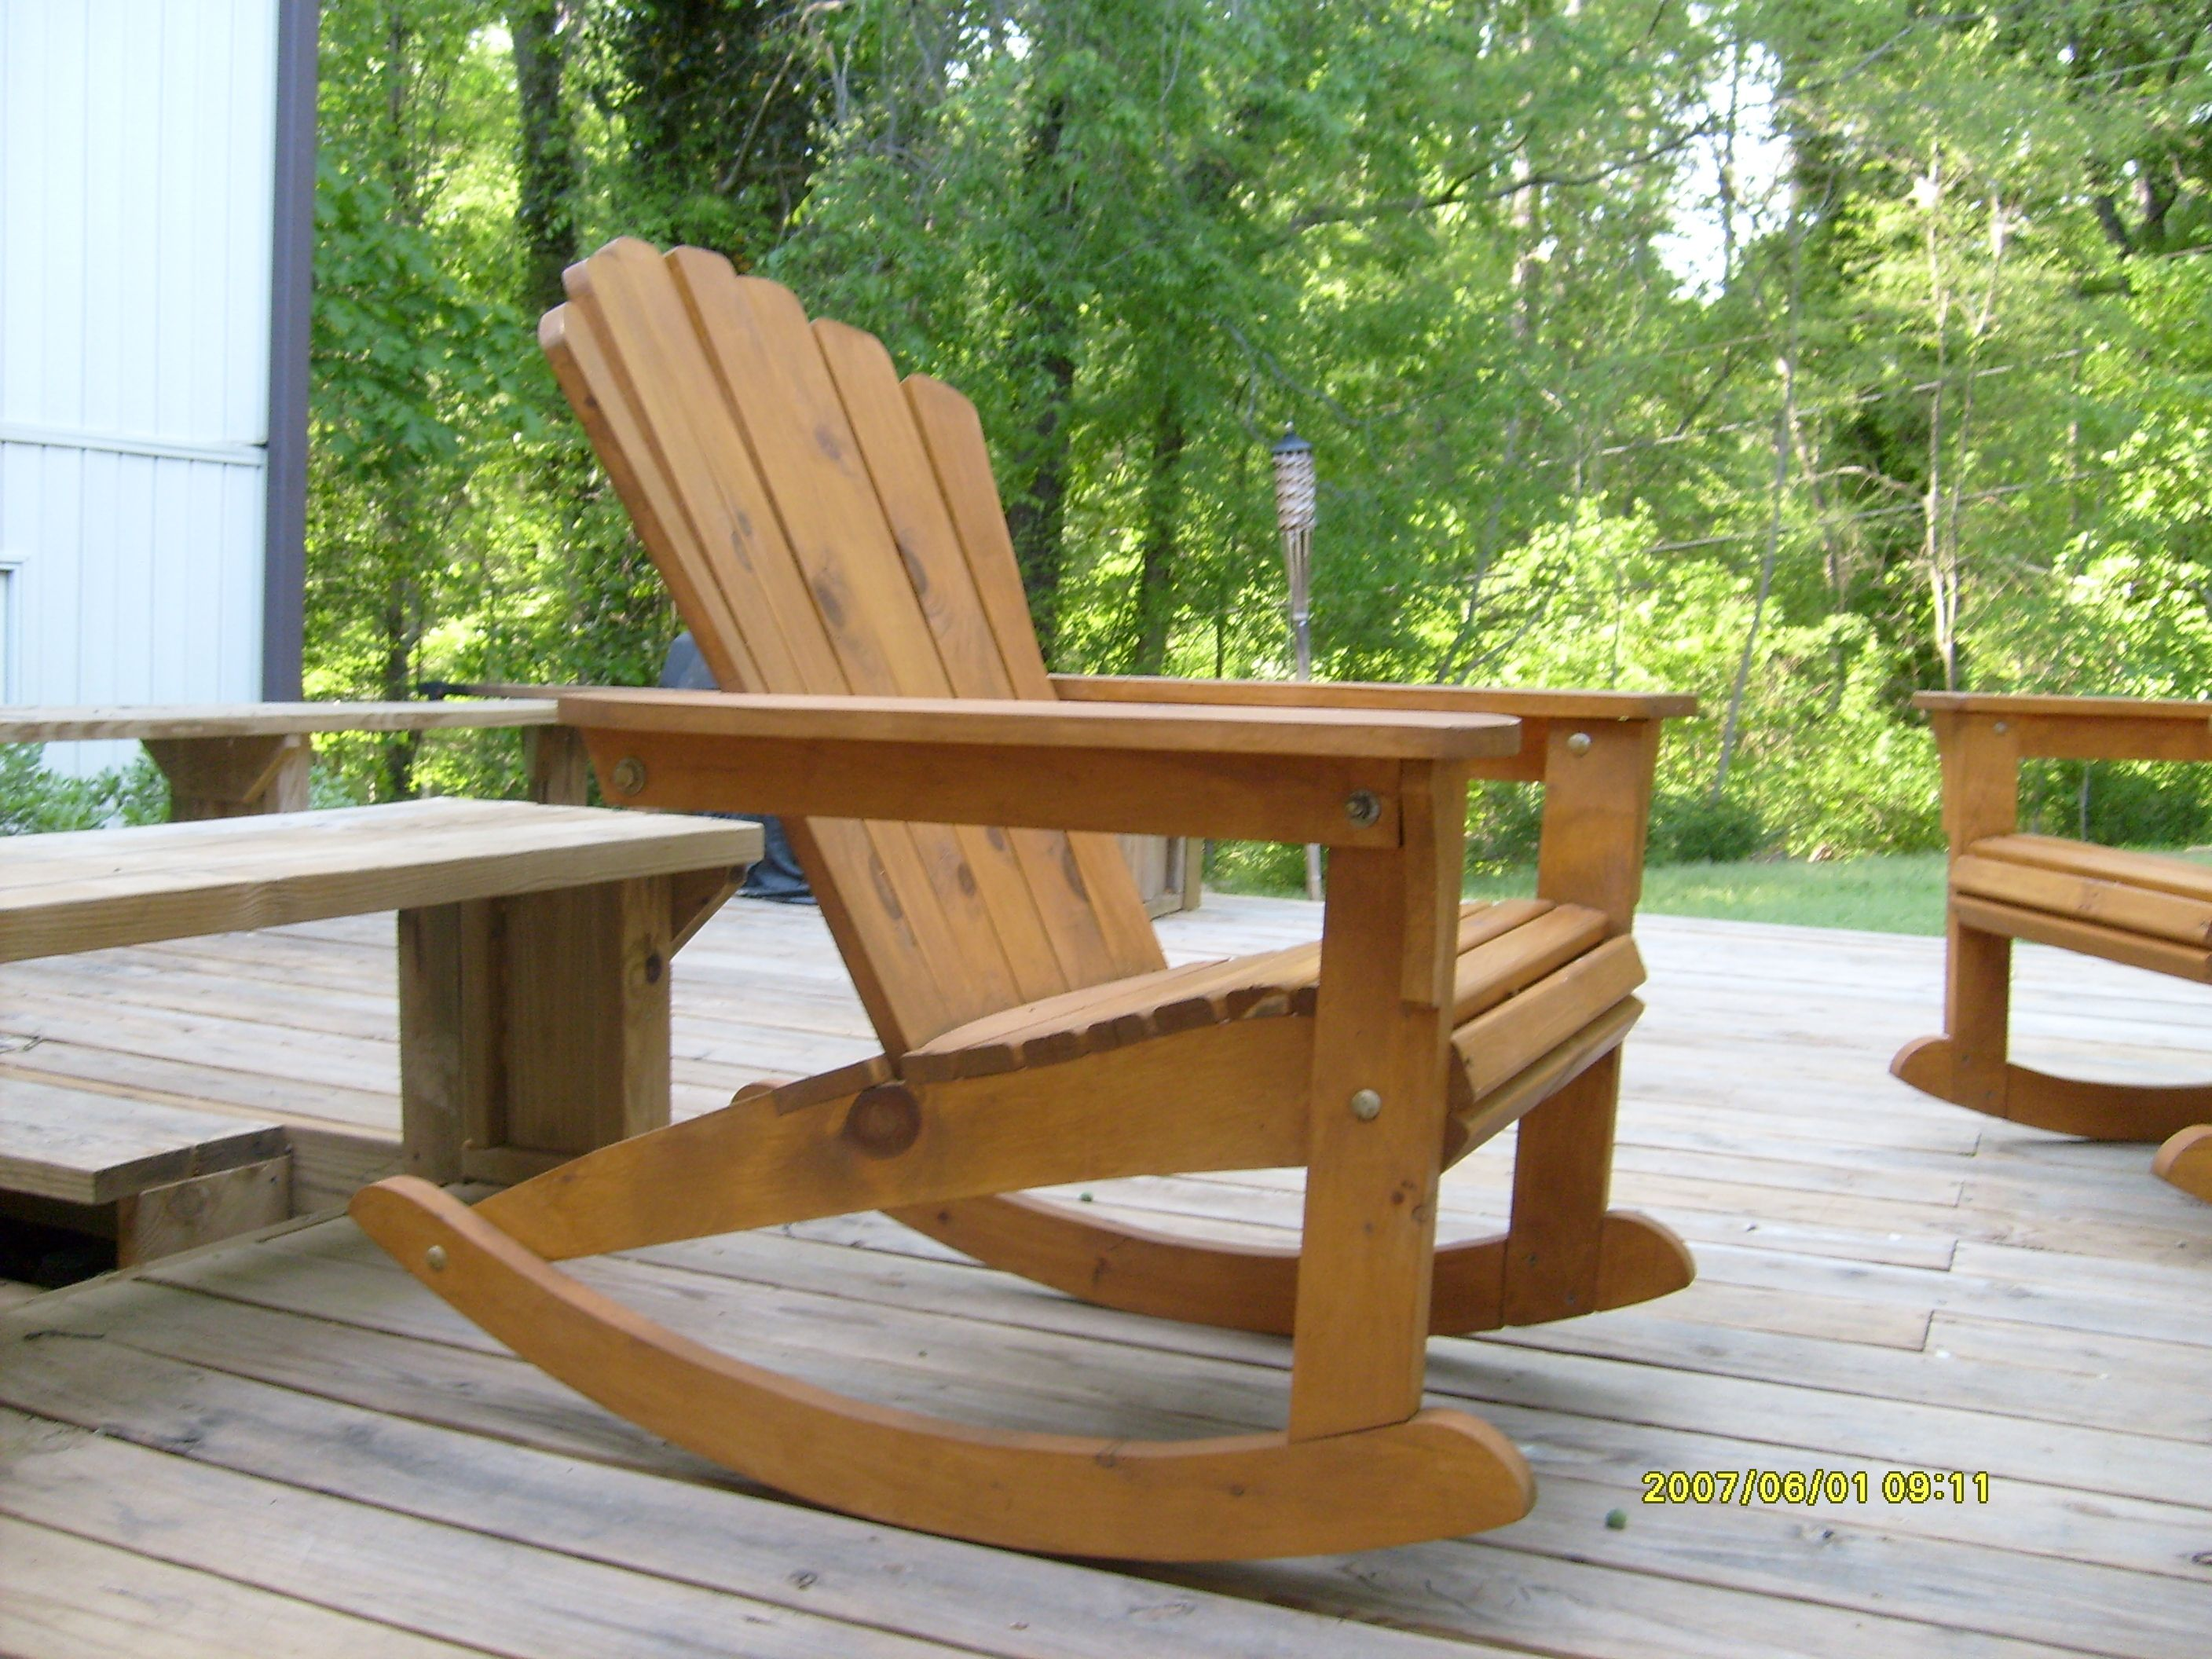 Adirondack Chair Designs gotta love a chair that forces you to relax teak adirondack chair plans Build Plans Adirondack Rocking Chair Diy Small House Plan Designs